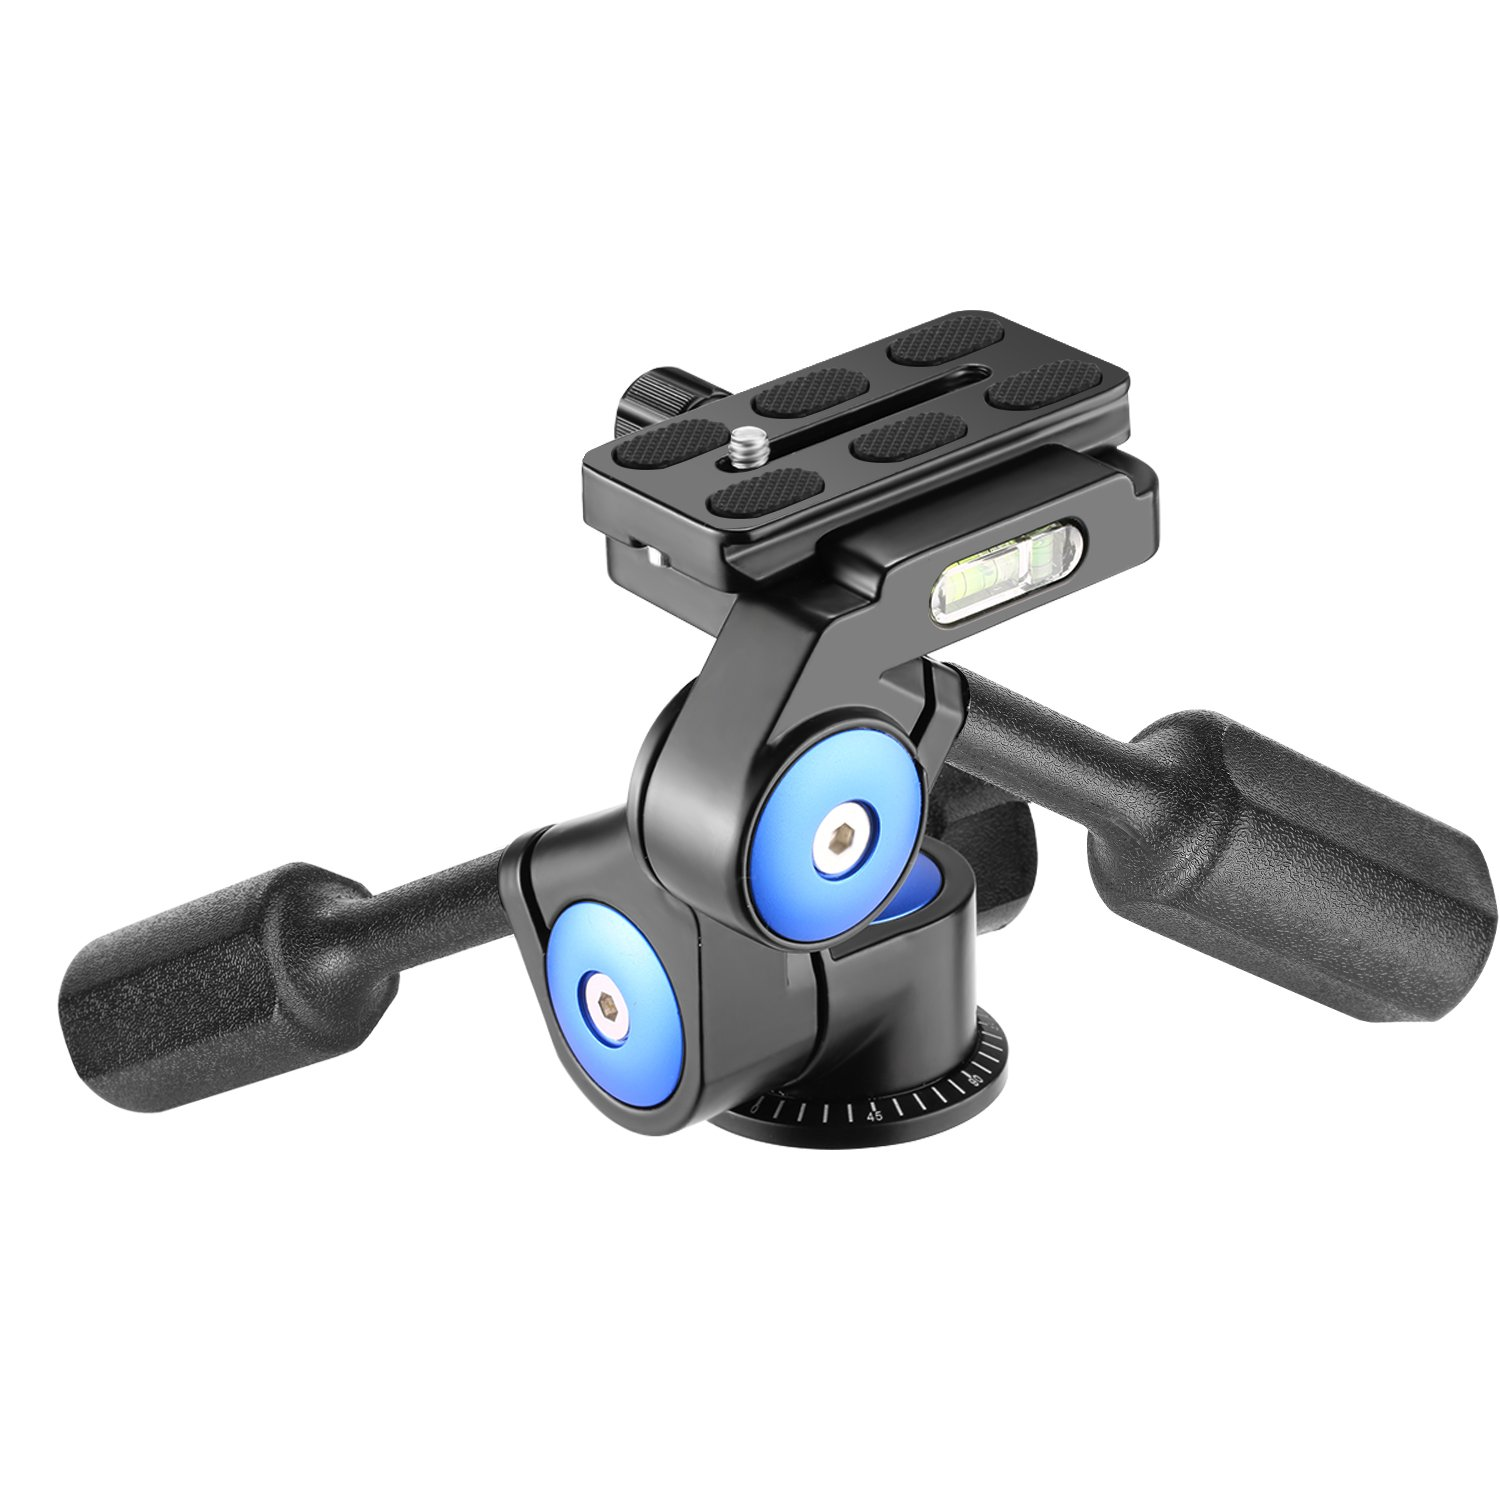 Neewer Camera Video Tripod Head Handle Ball Head 360 Degree Rotation, with 1/4 inch Quick Shoe Plate for Tripod, Monopod, Camera Slider, Light Stand and DSLR Cameras, Load Up to 22 pounds (3-Way) by Neewer